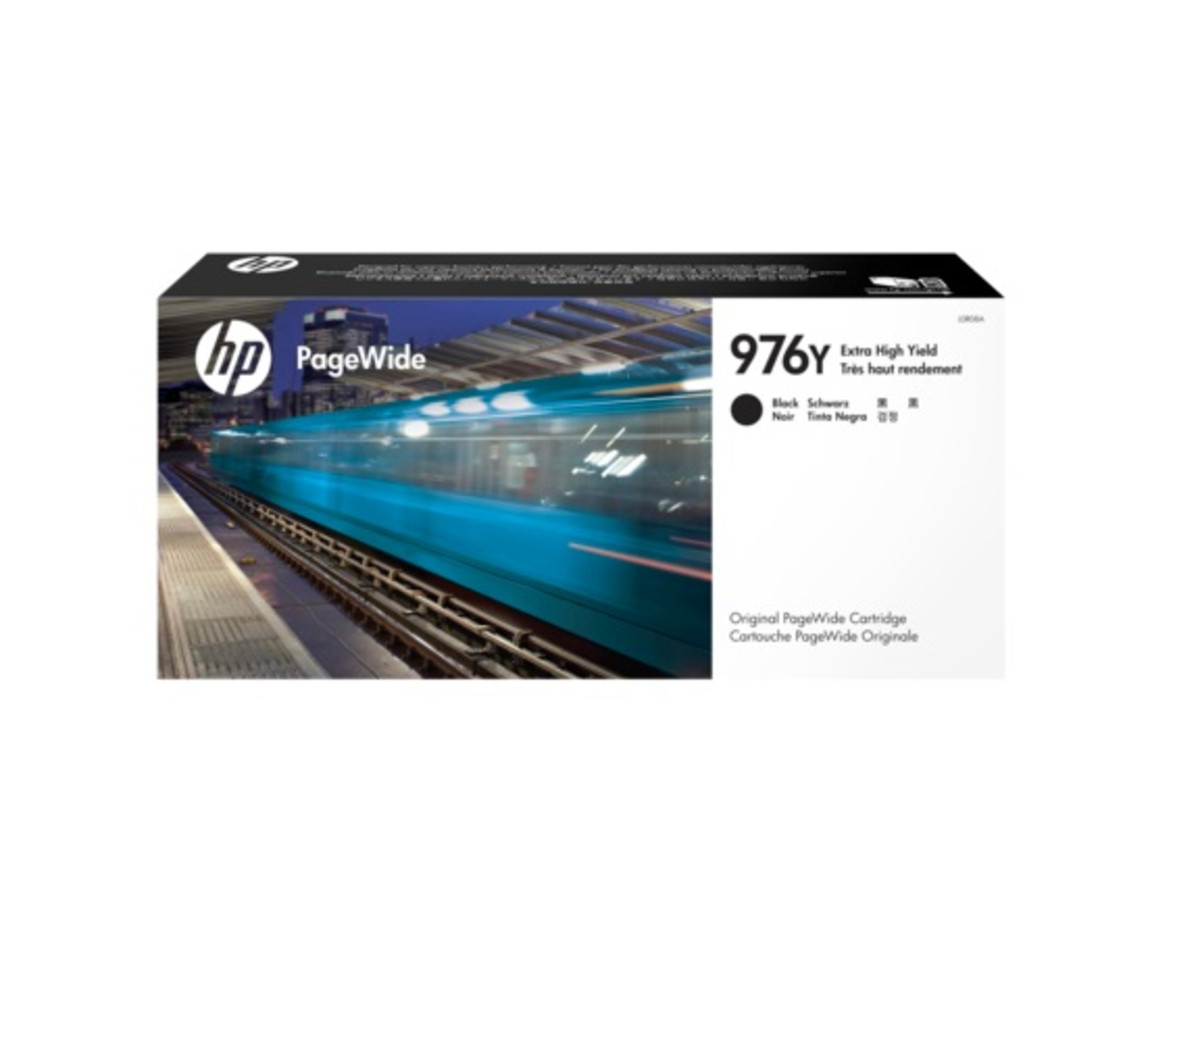 HP 976Y (L0R08A) Extra High Yield Black PageWide Inkjet Cartridge